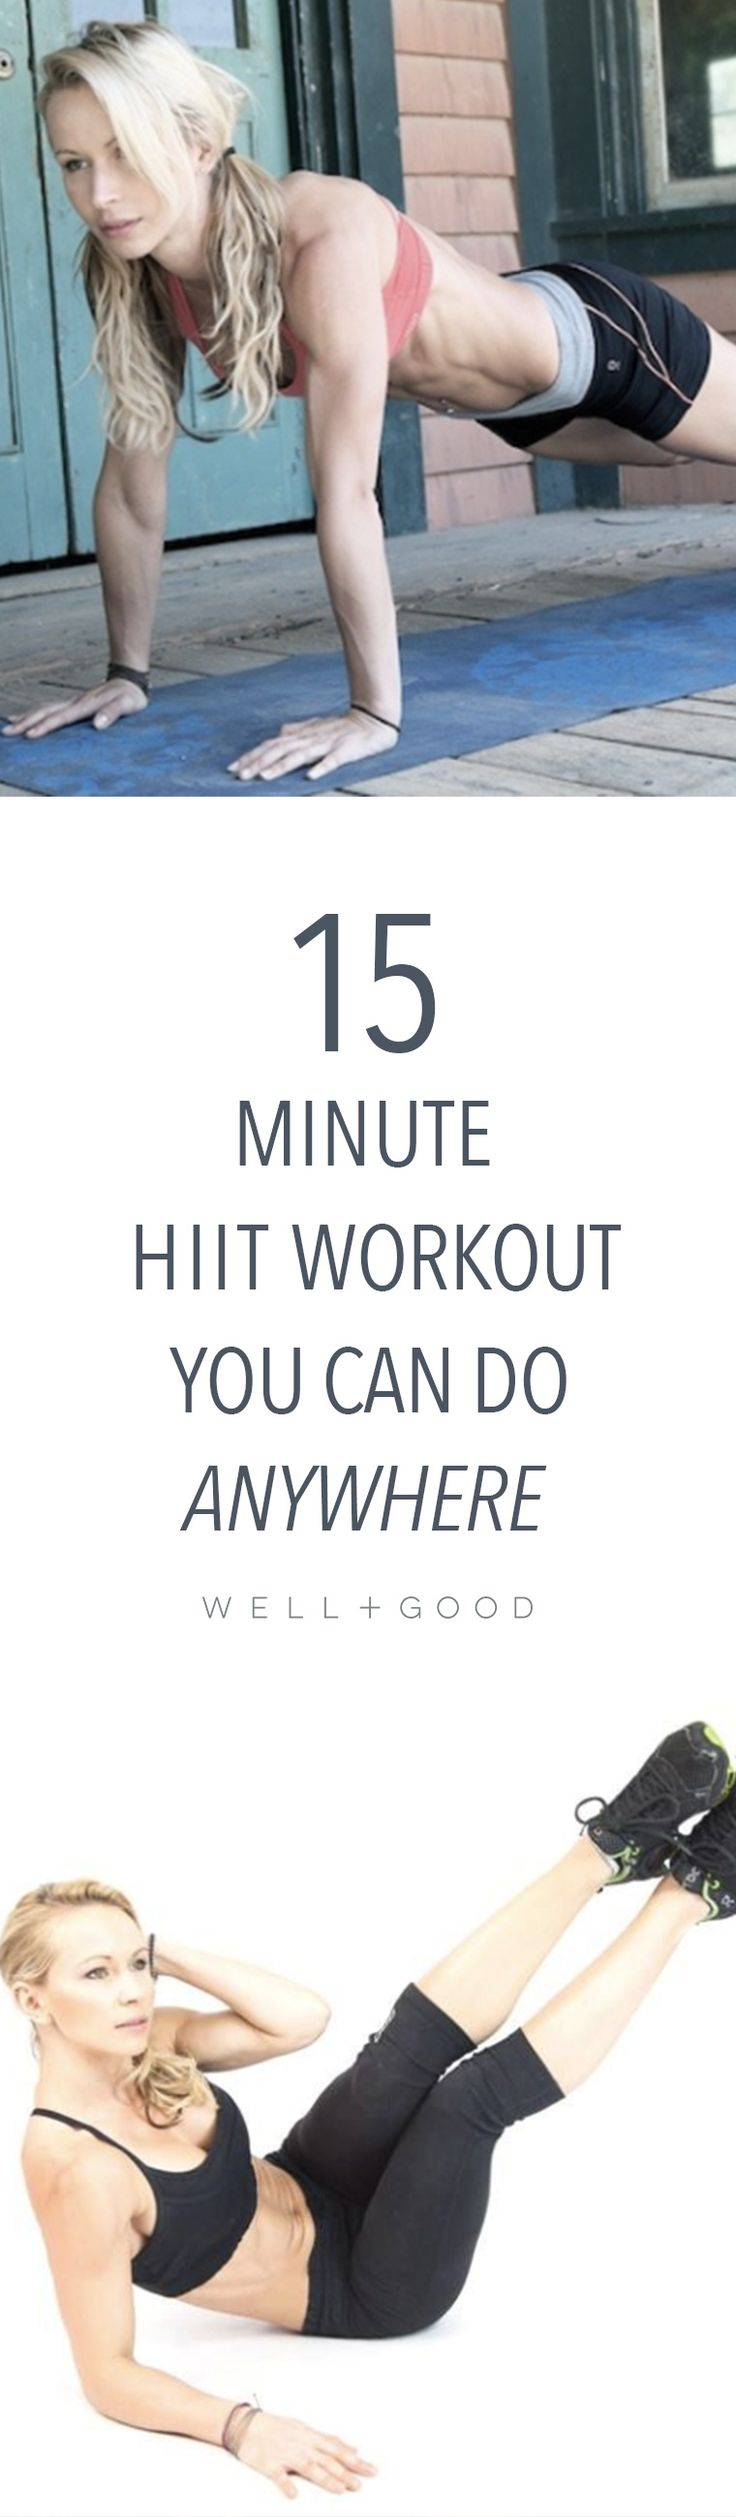 15 minute HIIT workout you can do anywhere